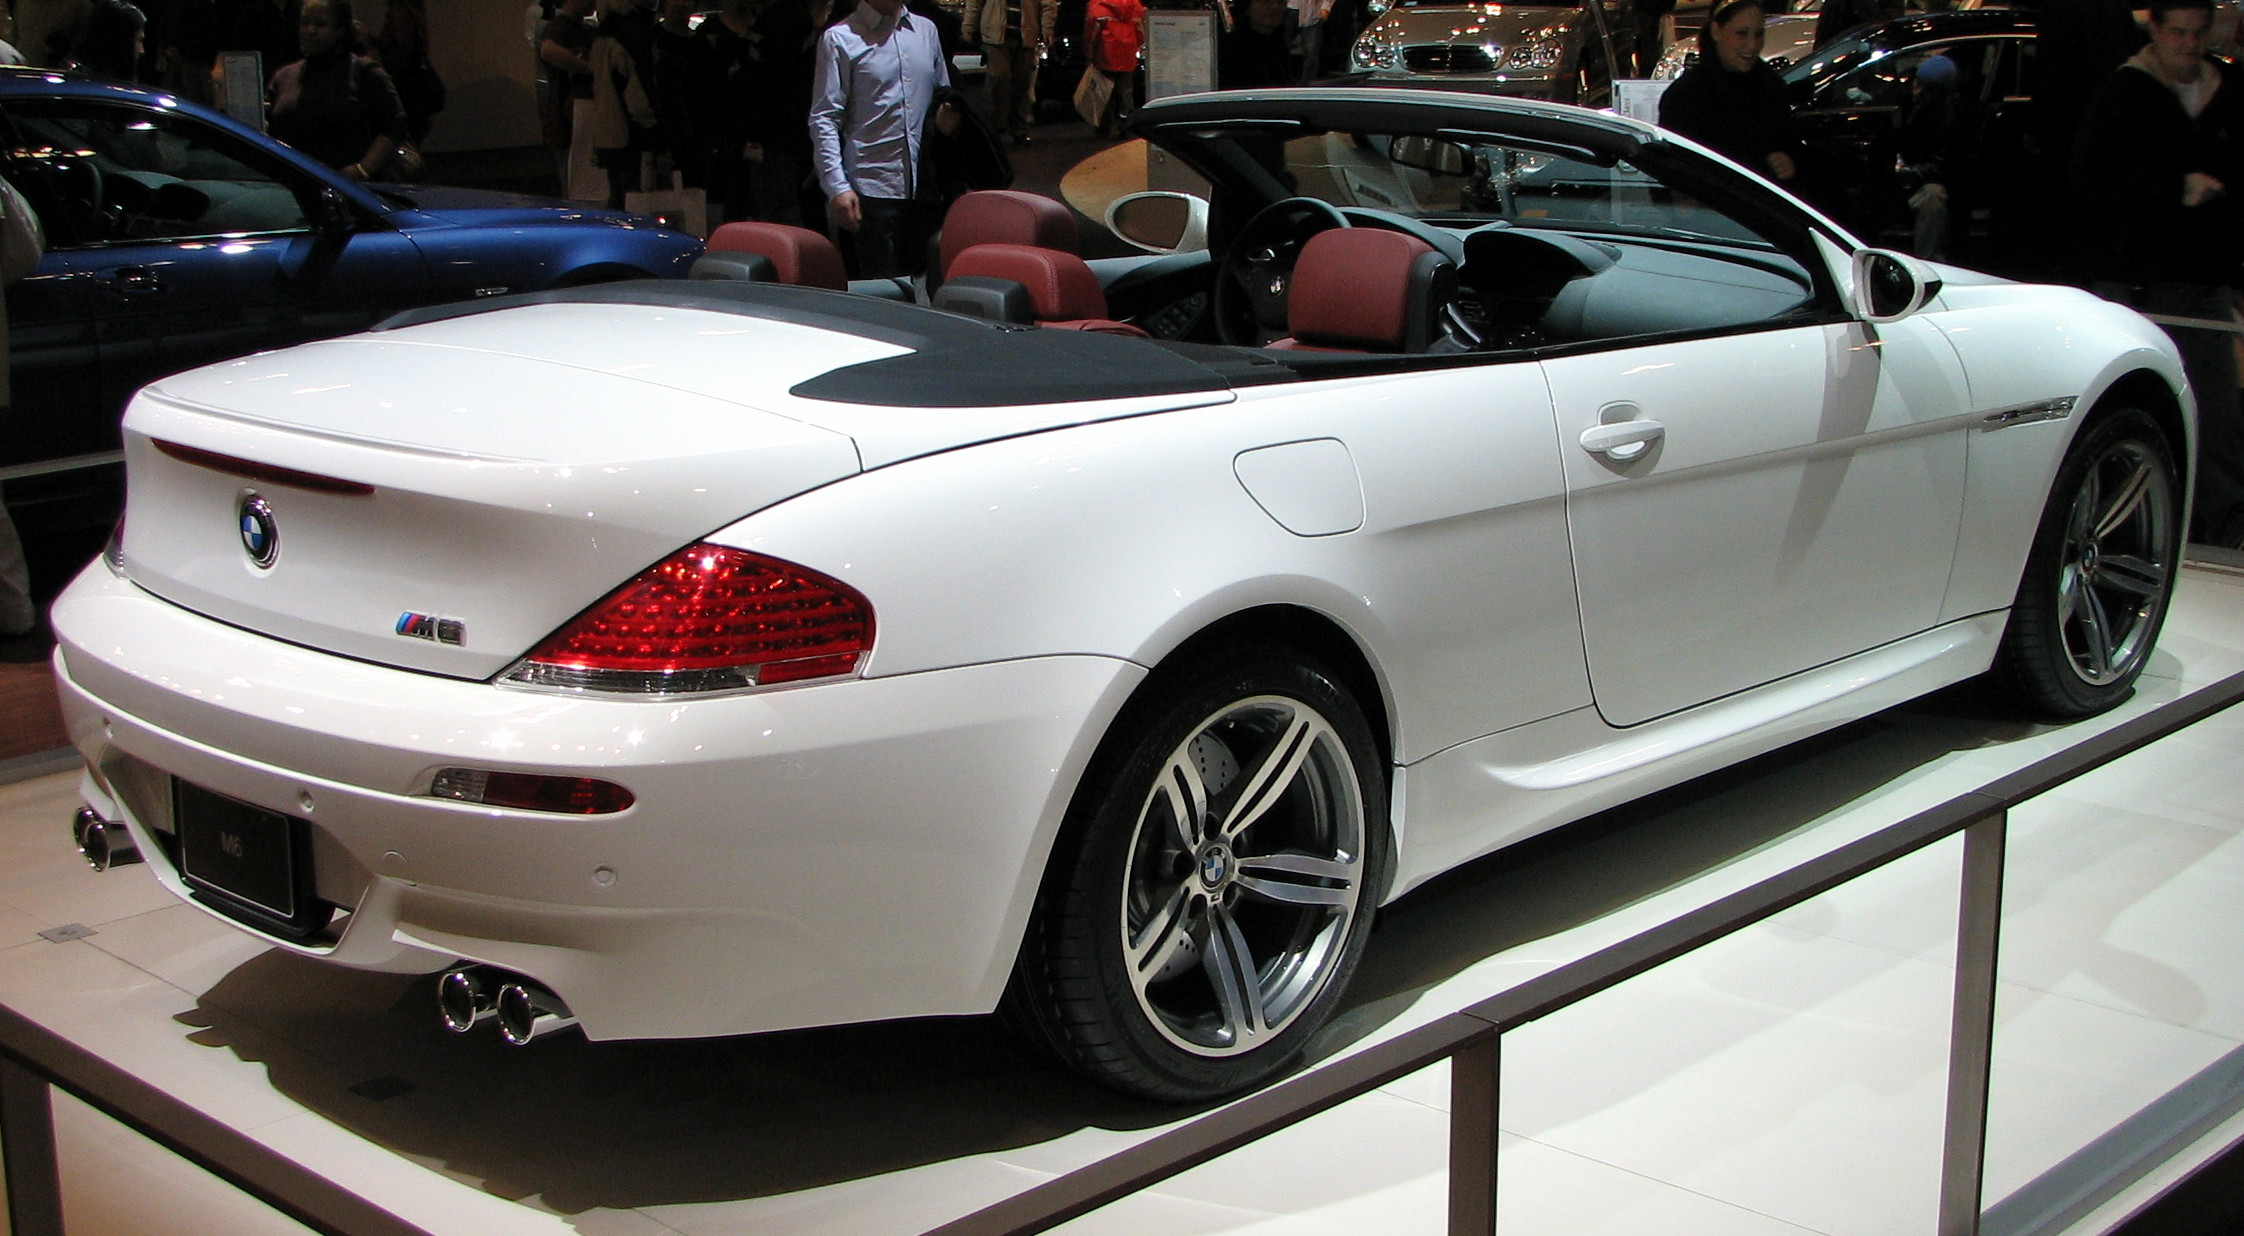 bmw m6 cabrio photos 2 on better parts ltd. Black Bedroom Furniture Sets. Home Design Ideas